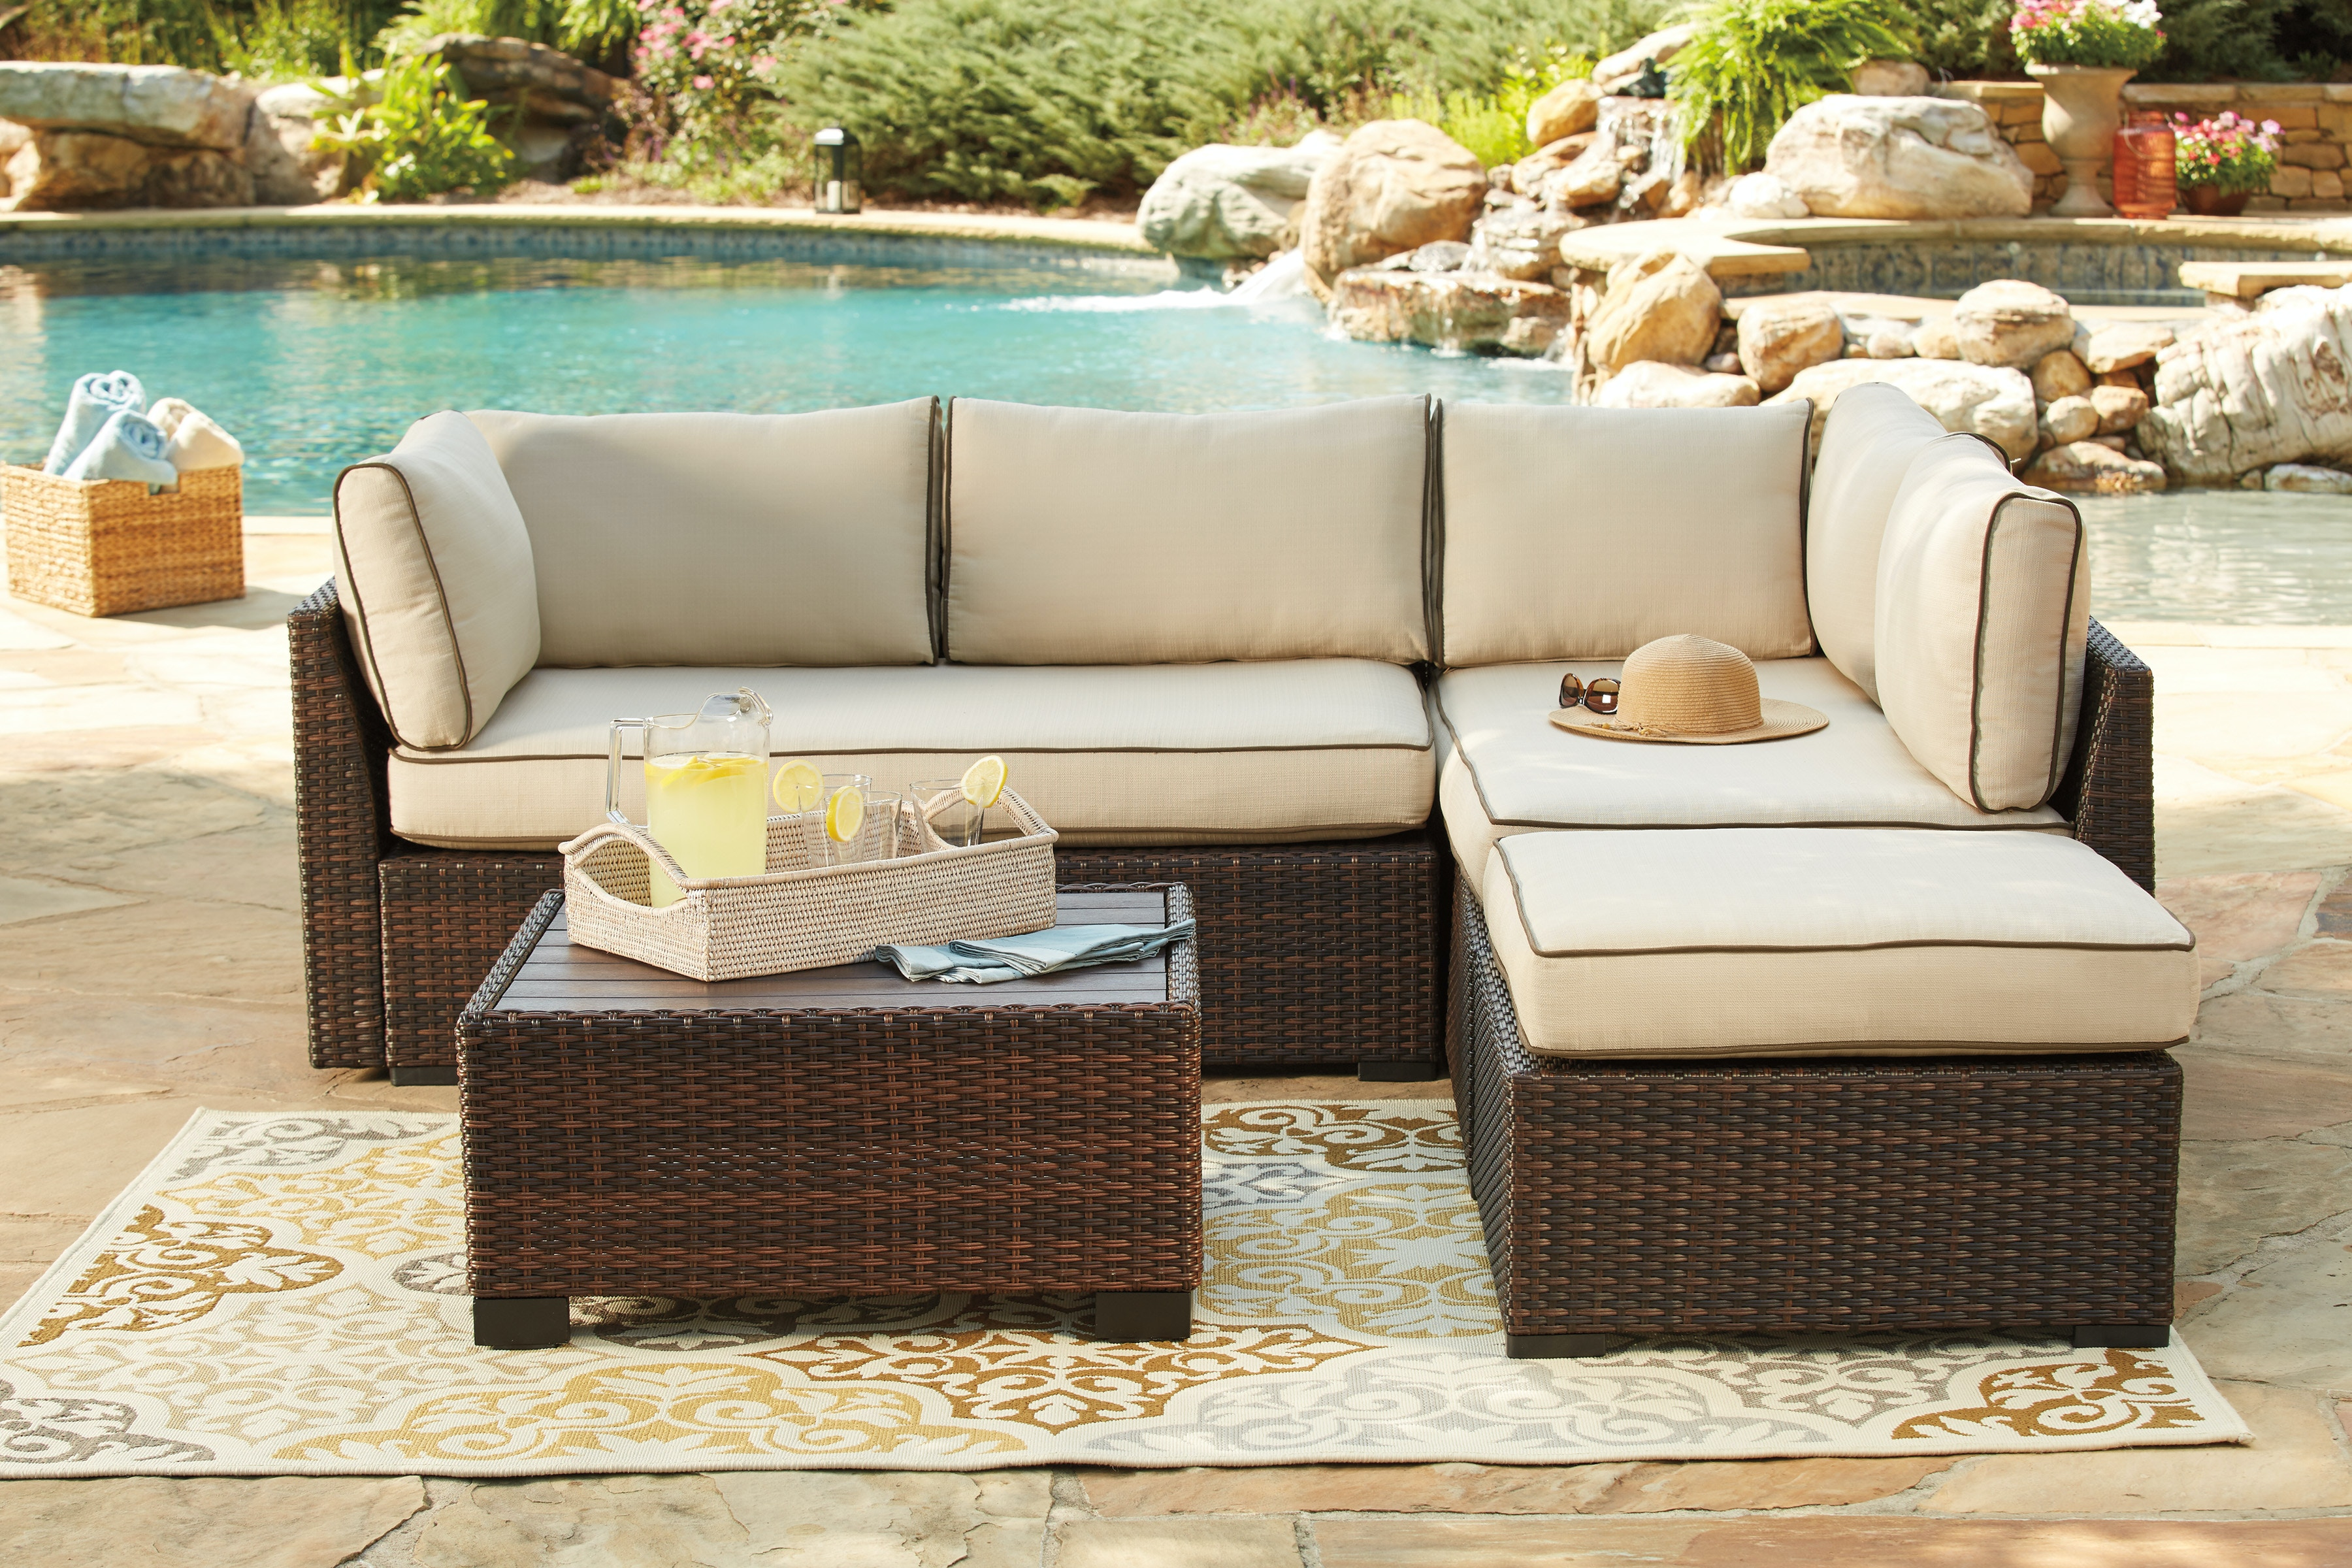 Signature Design By Ashley Loughran Beige And Brown Outdoor Sectional With  Ottoman U0026 Table P300